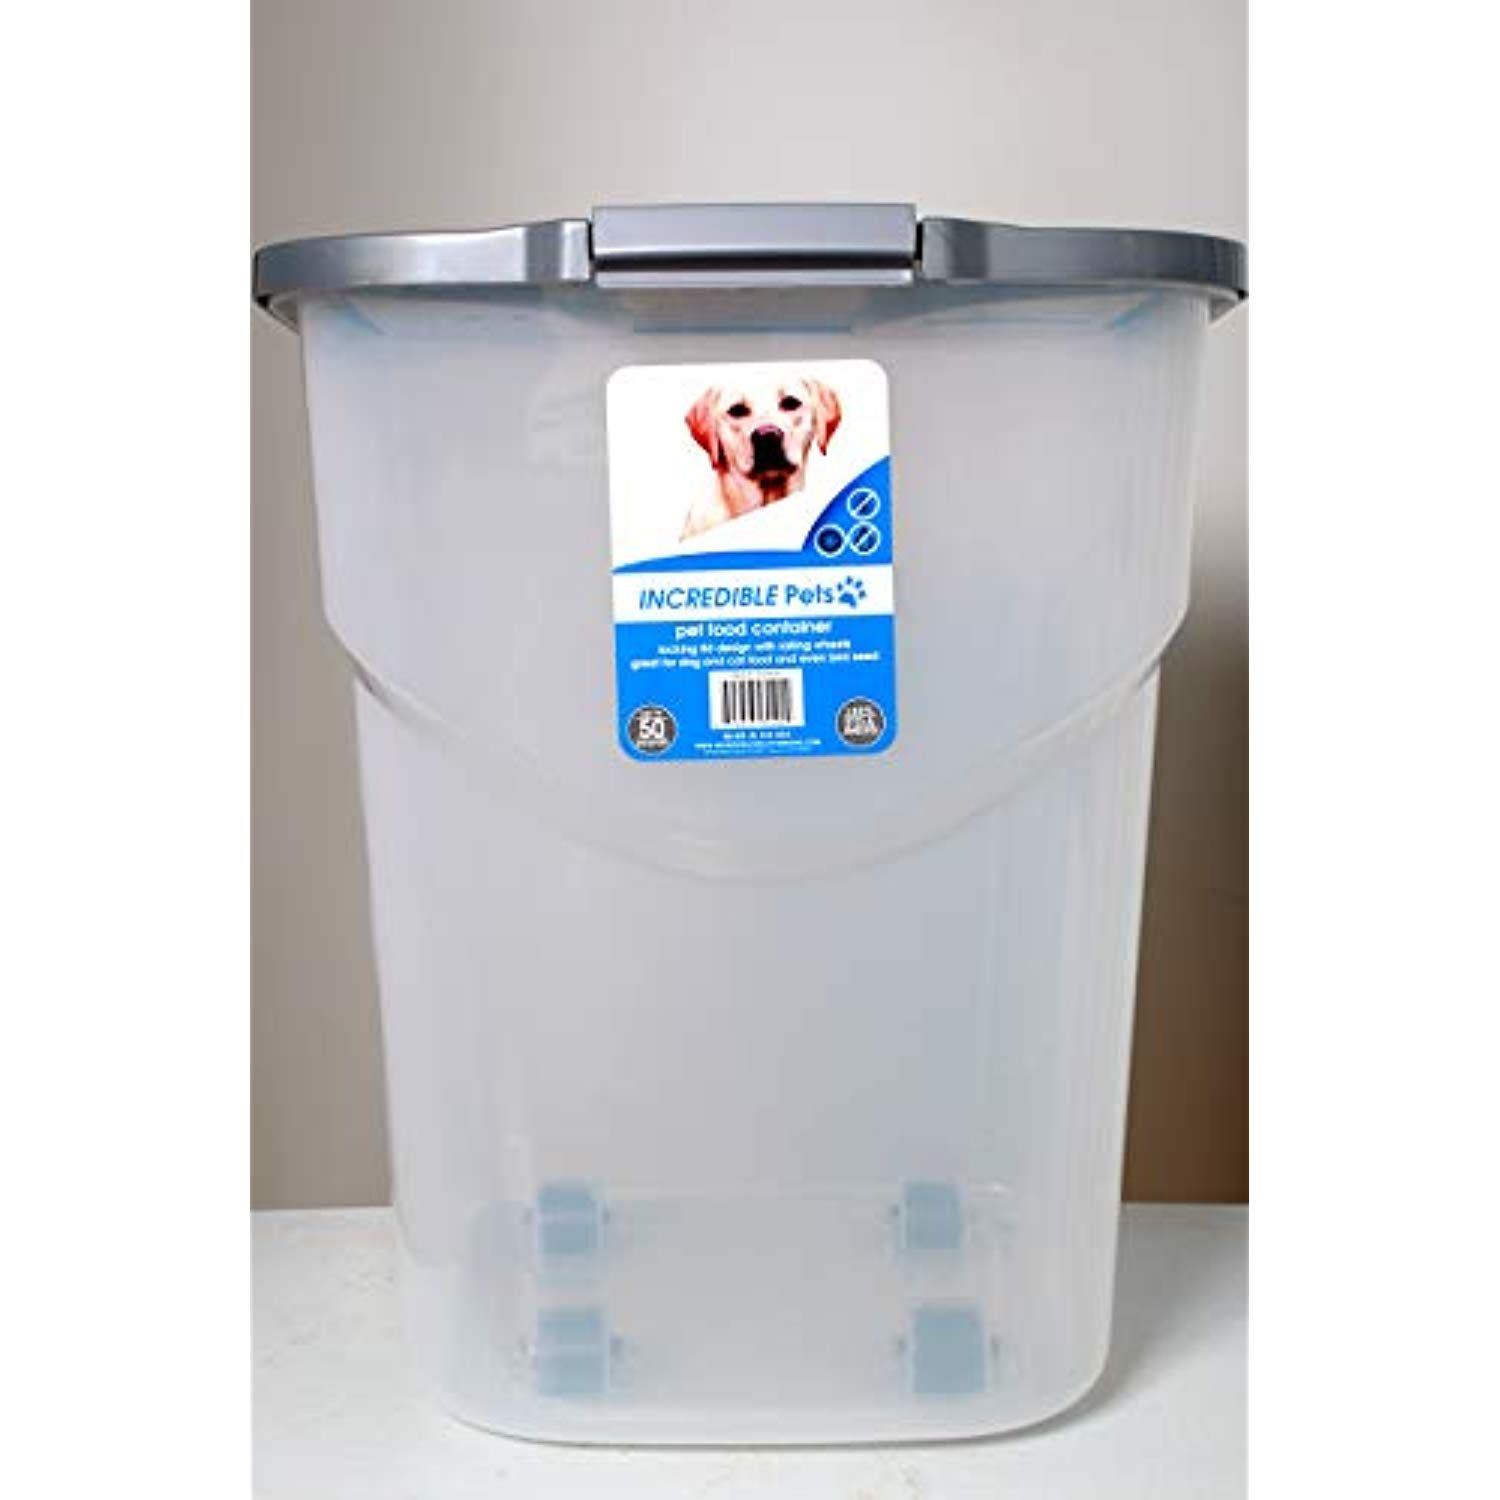 Incredible Solutions 95400 Pet Food 50 Lb To View Further For This Item Visit The Image Food Animals Pet Food Storage Container Airtight Pet Food Storage